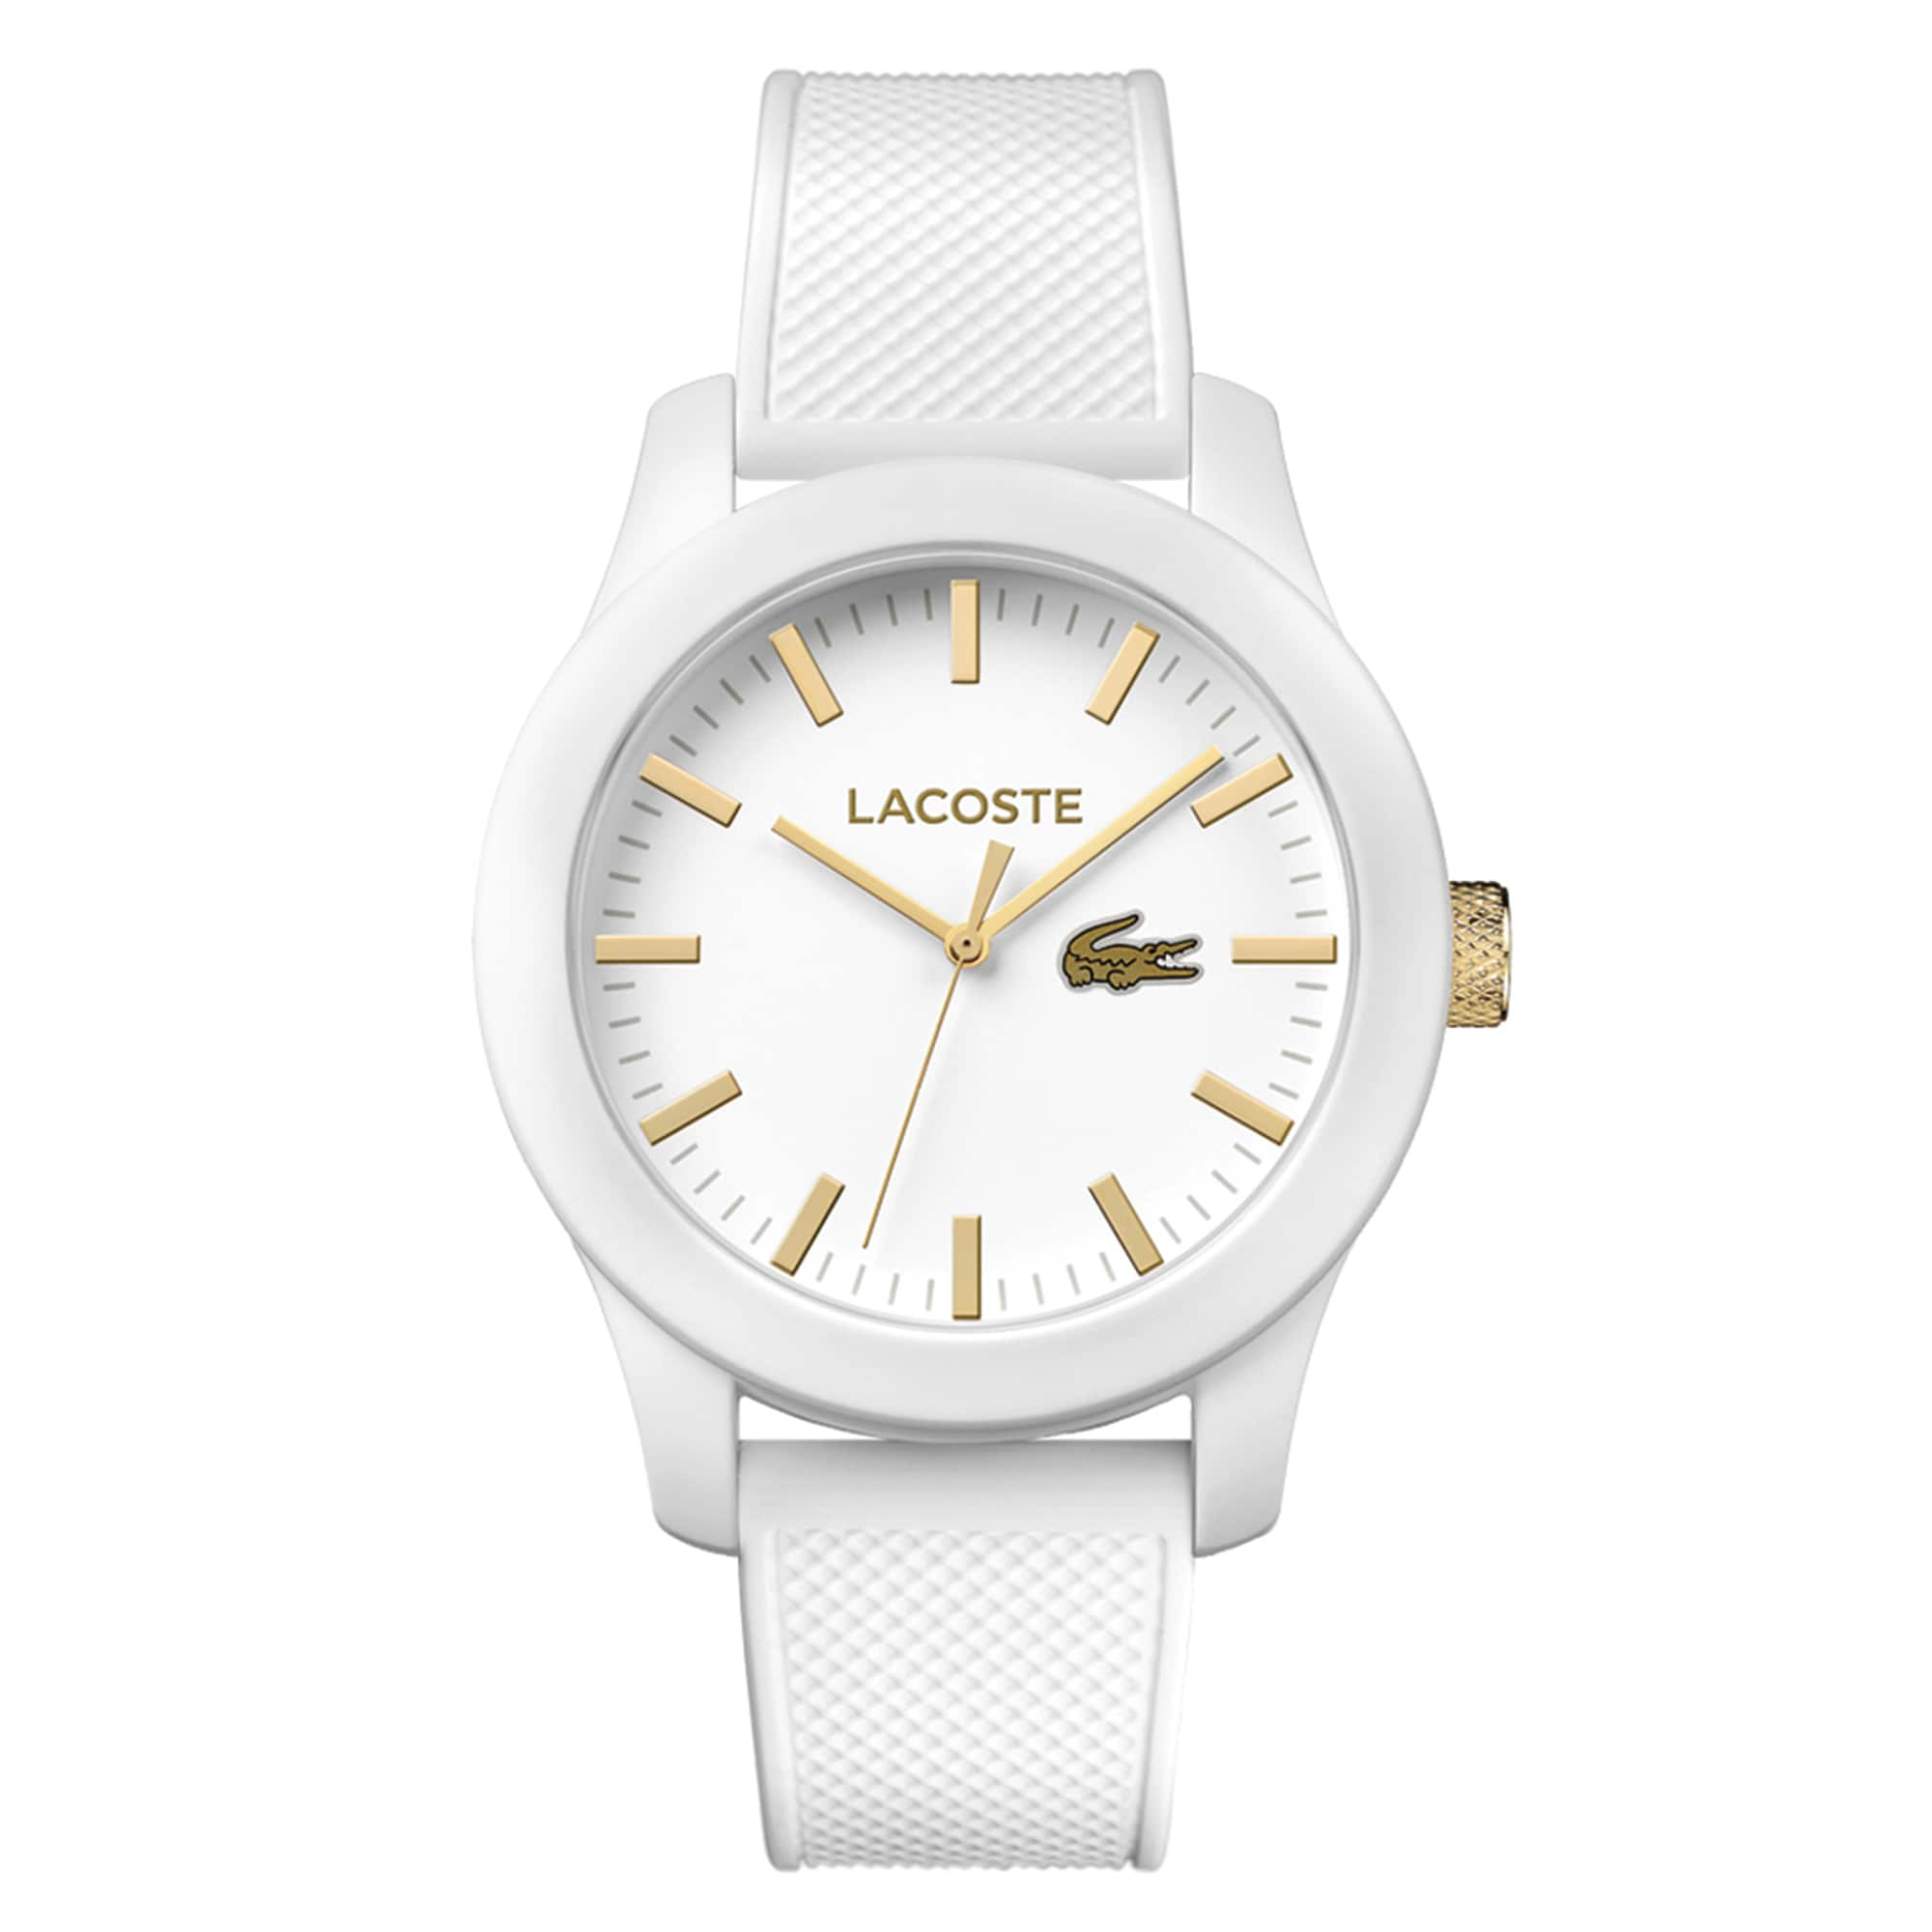 mens clhxauibdsabauicaweiga men at zso ac zappos white shipped watches free